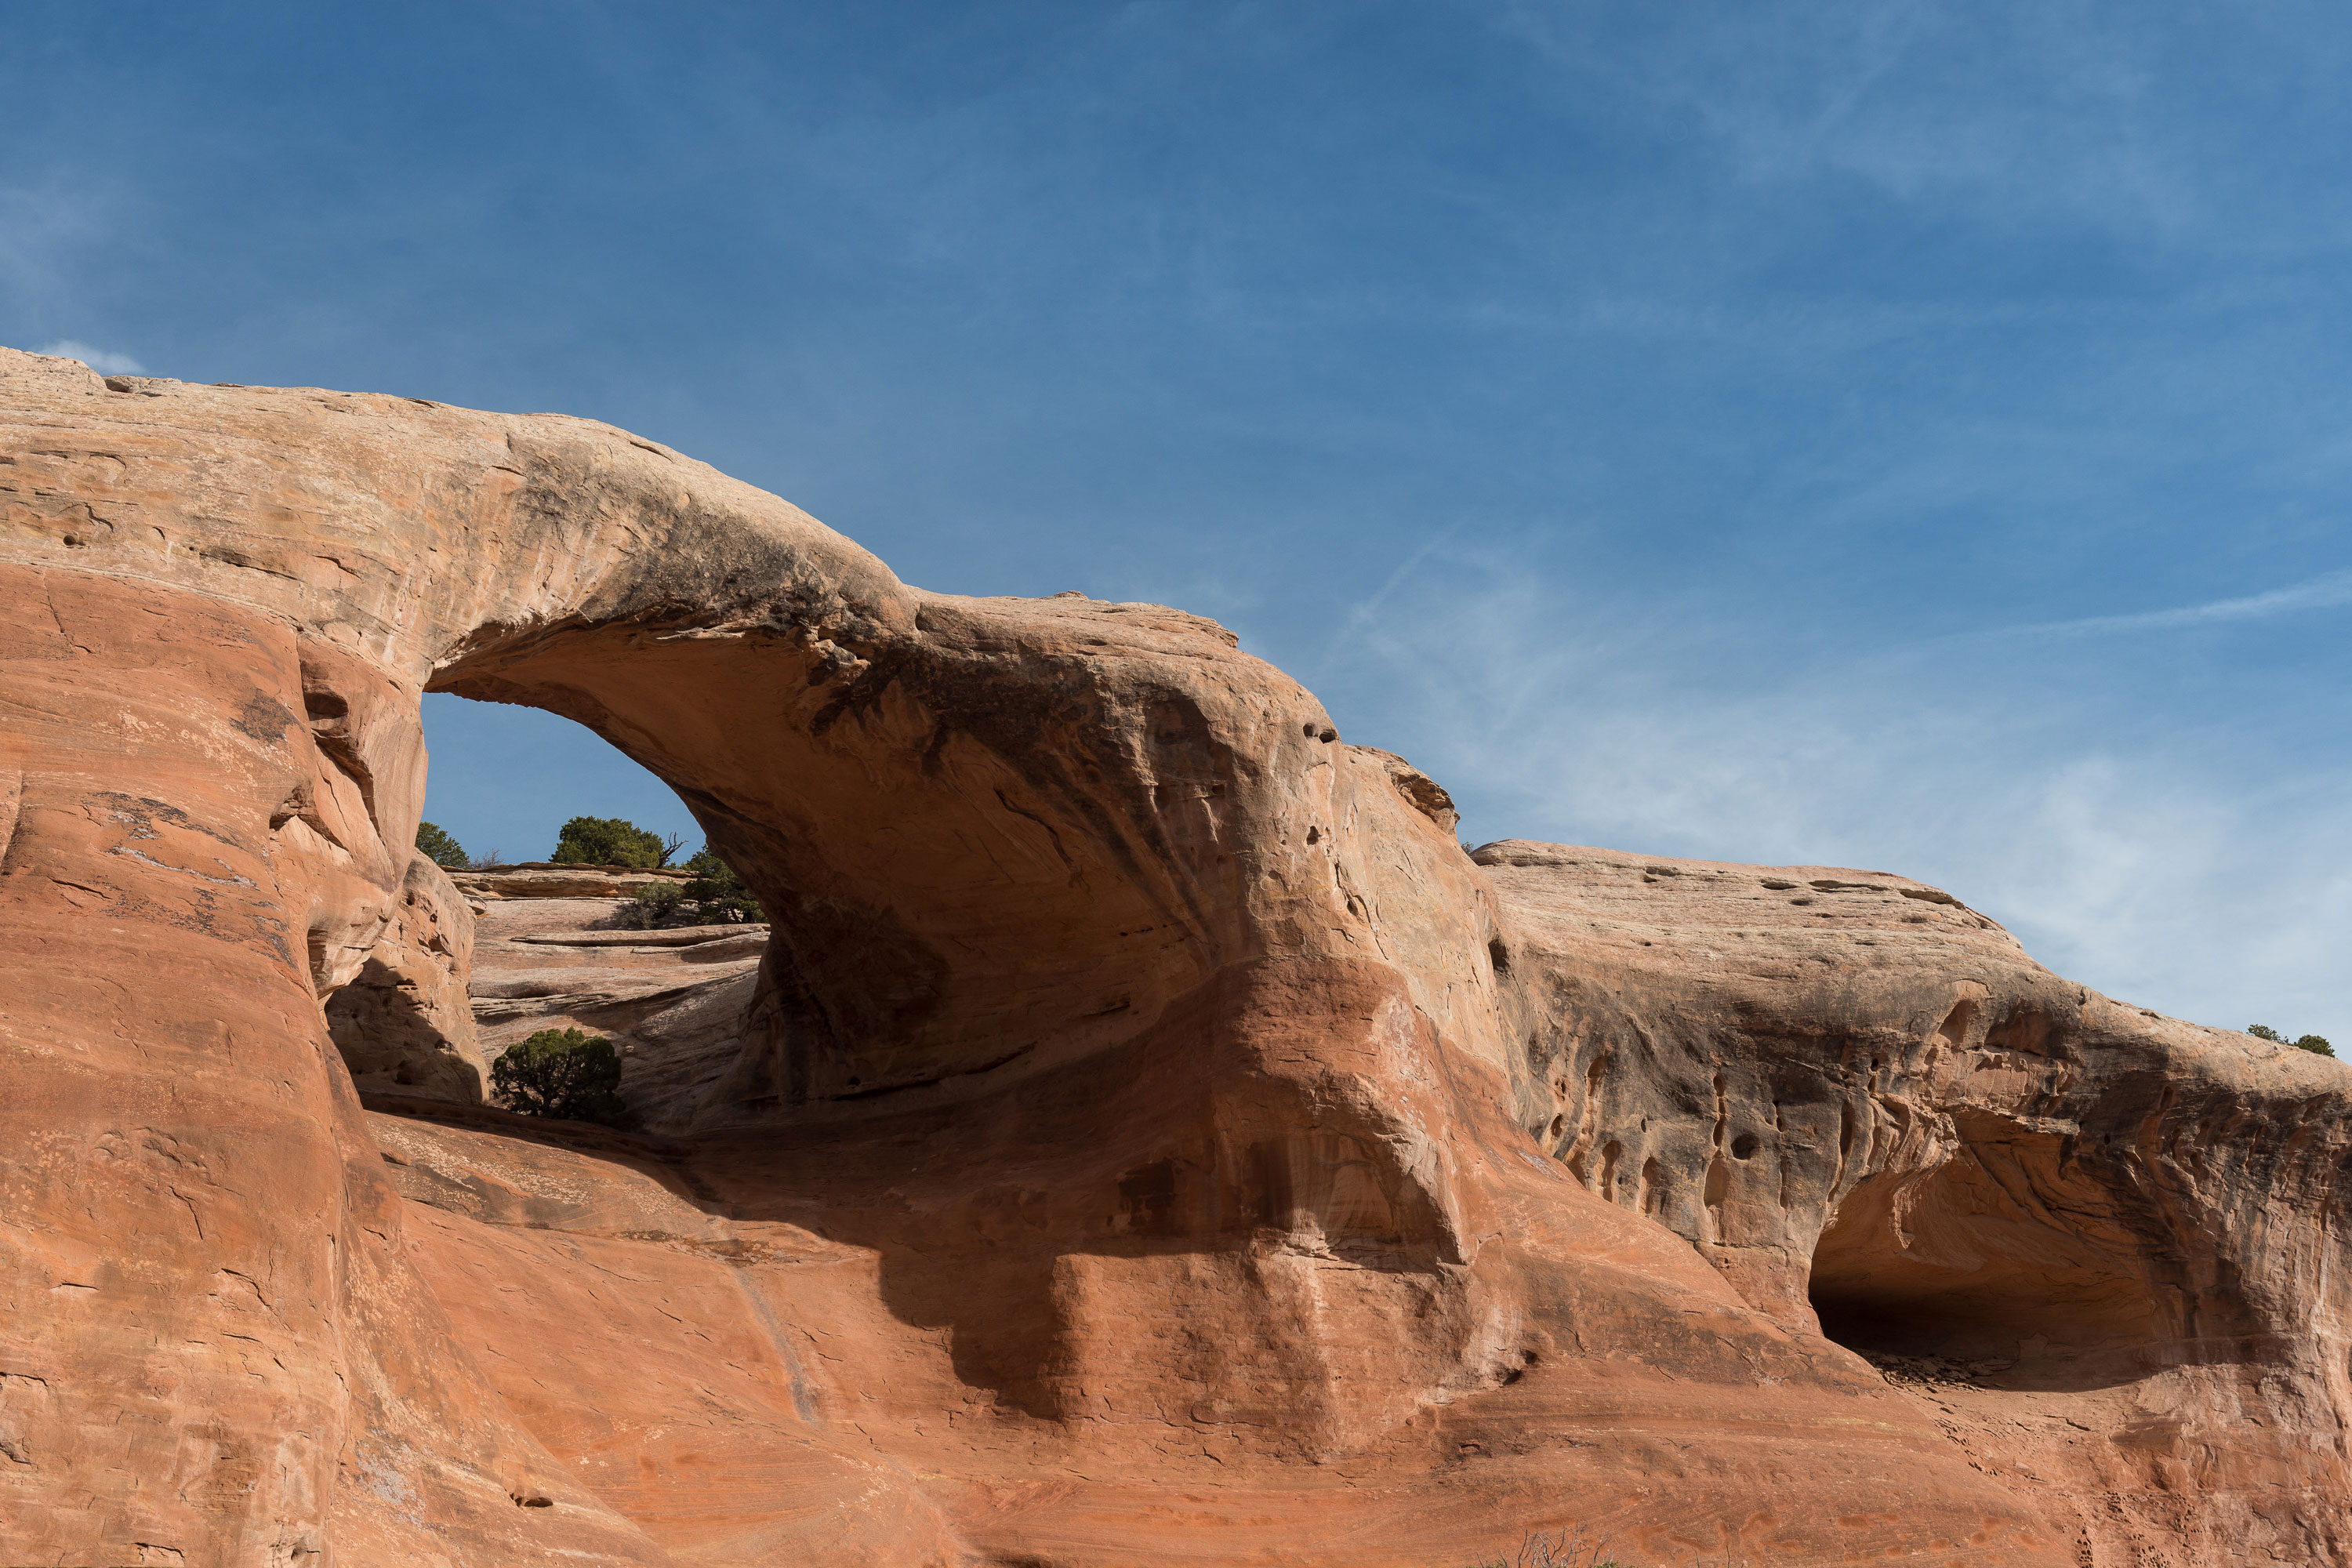 Cedar Tree 'Rainbow' Arch at Rattlesnake Arches Park